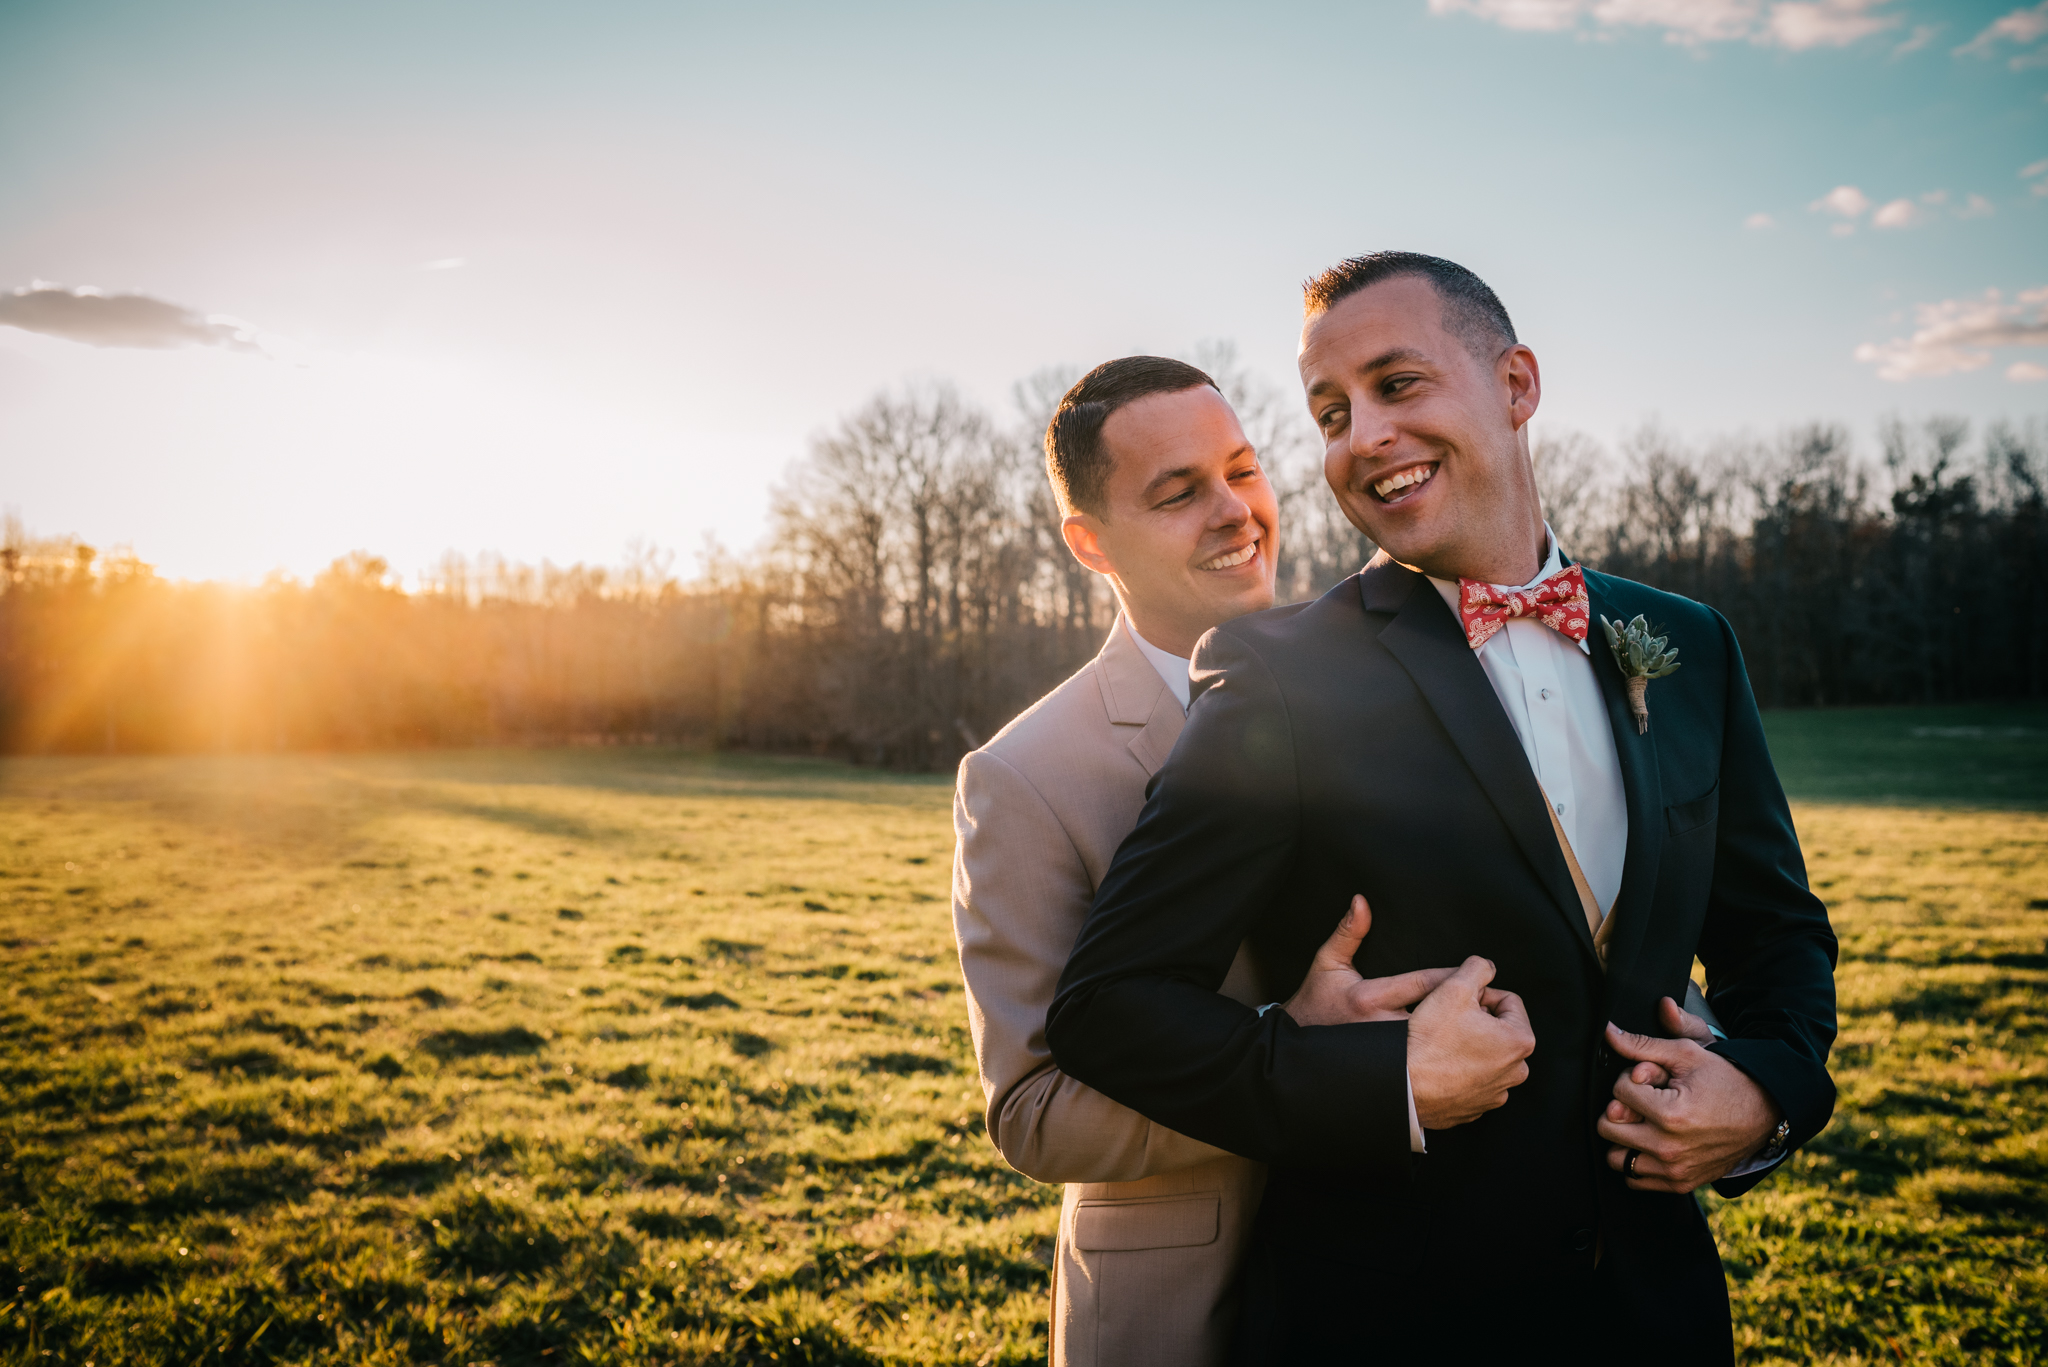 The grooms hugged at sunset during their styled engagement session with Rose Trail Images at Windy Hill Farm near Raleigh, NC.